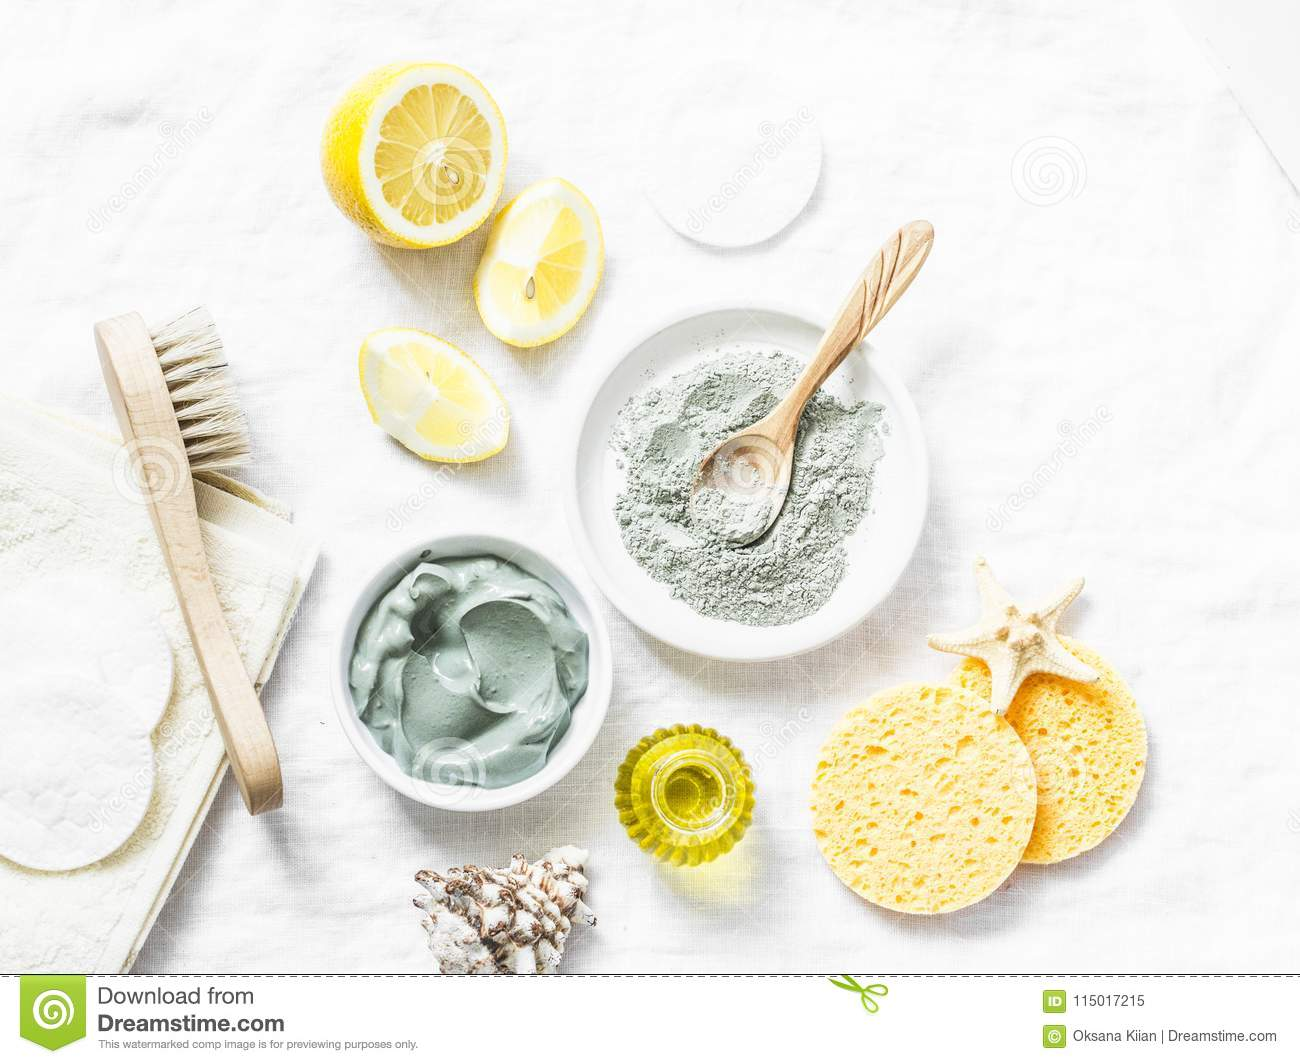 Homemade beauty facial mask. Clay, lemon, oil, facial brush - beauty products ingredients on light background